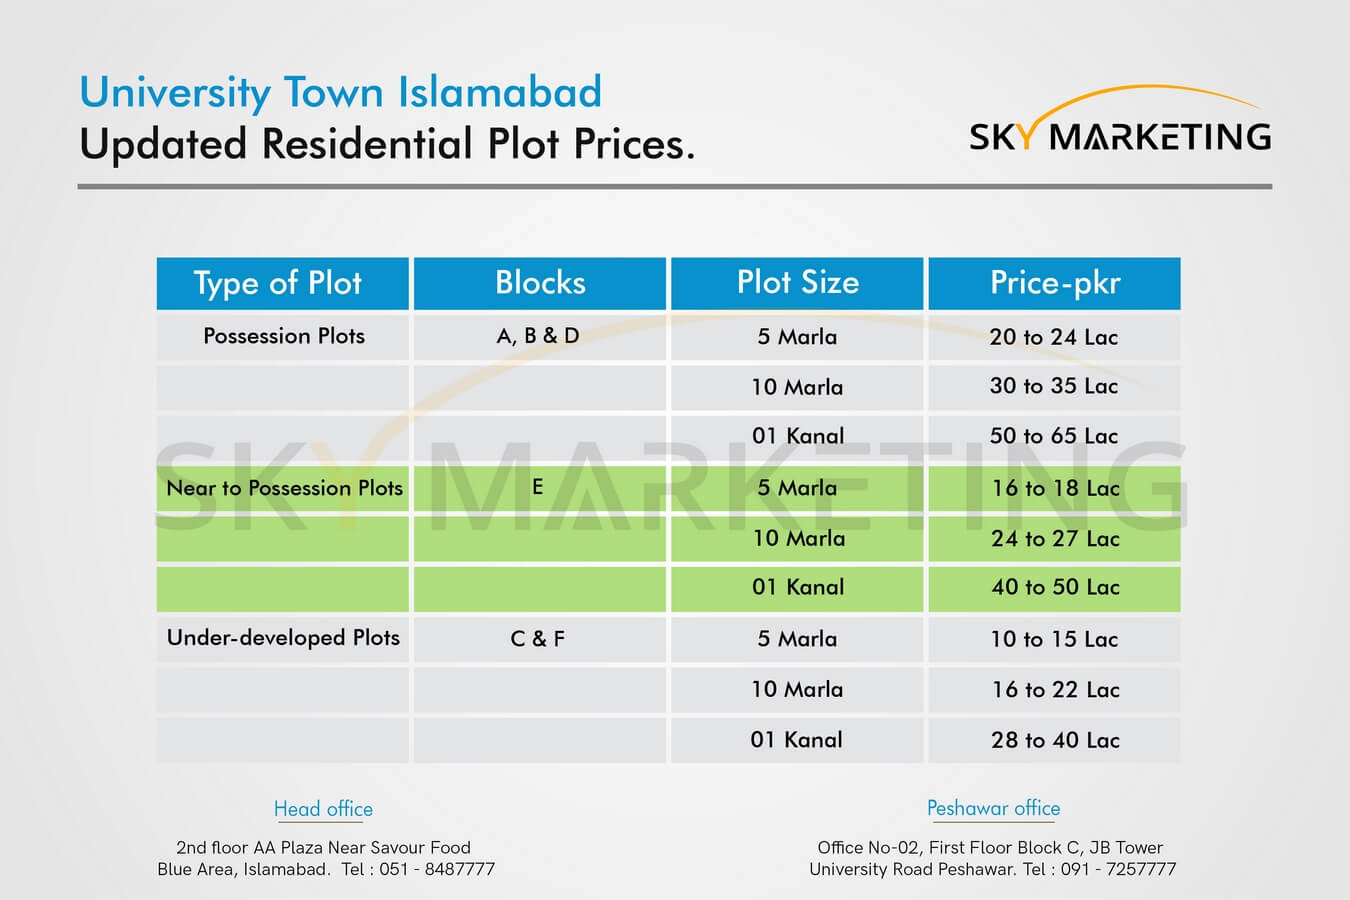 University Town islamabad plot prices